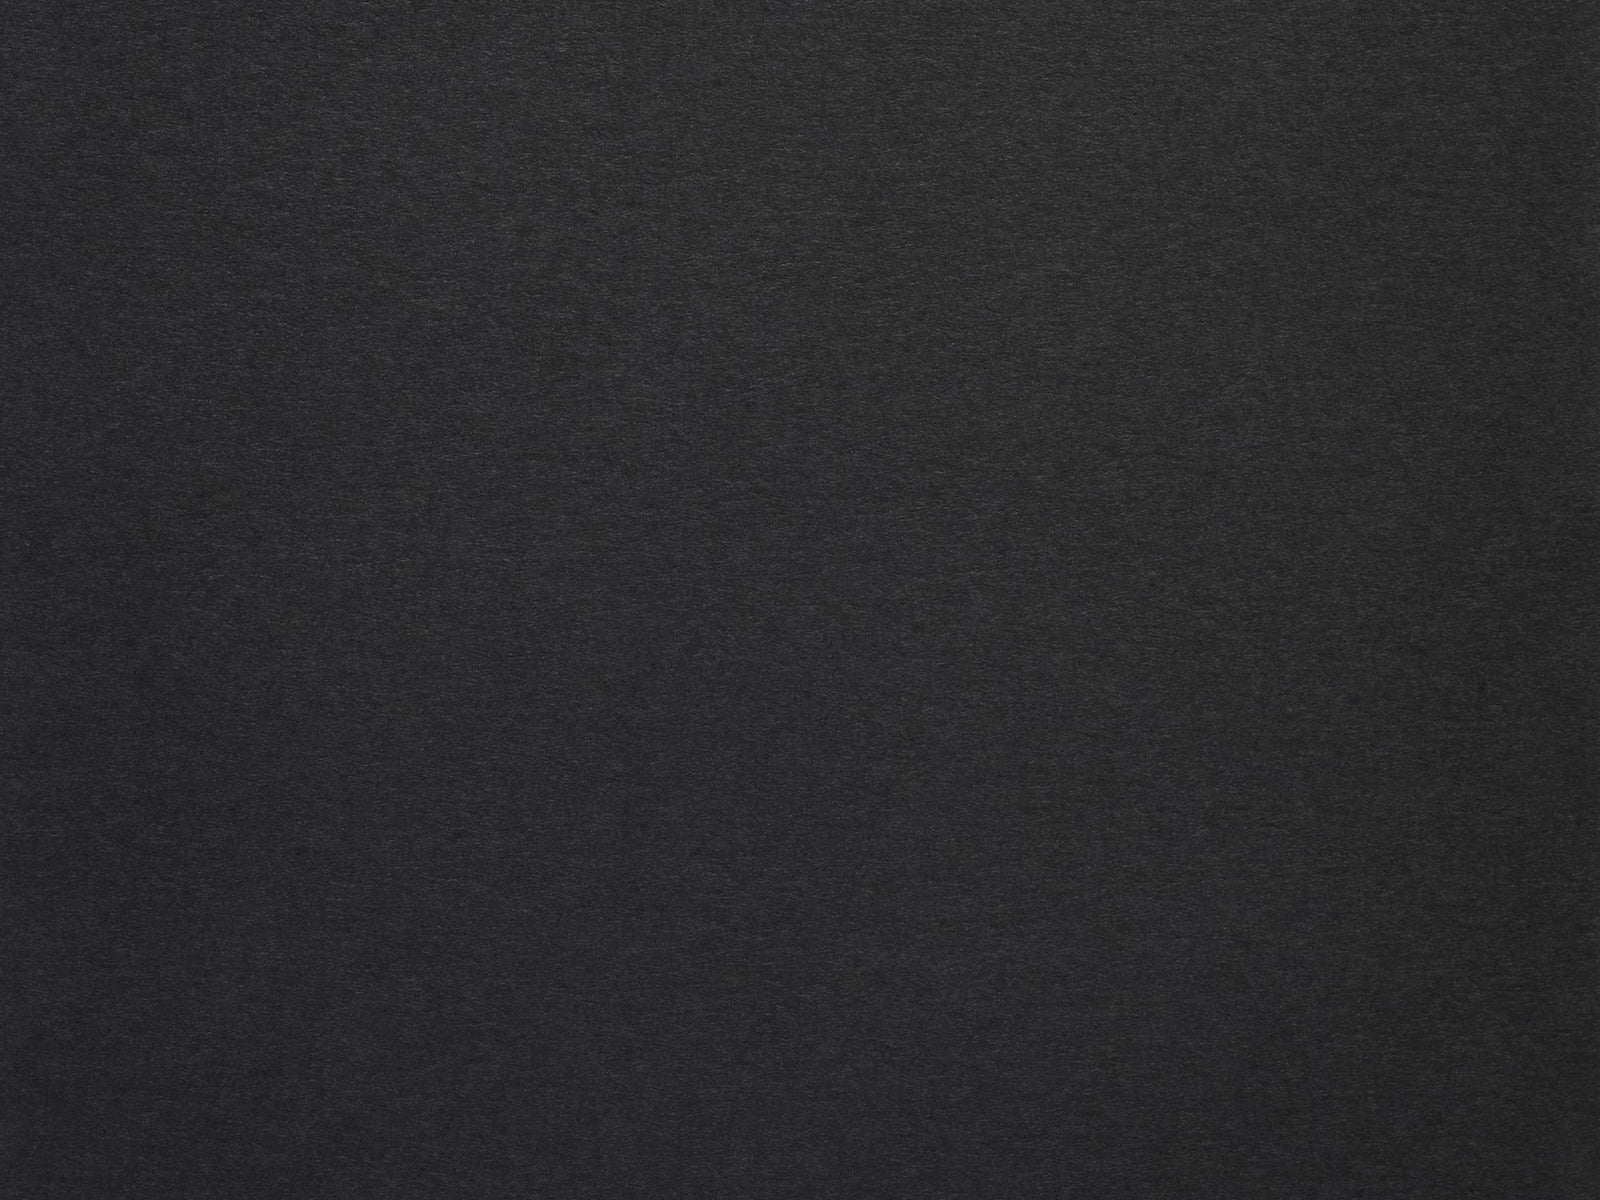 GF Smith Paper Colorplan Ebony Black Card